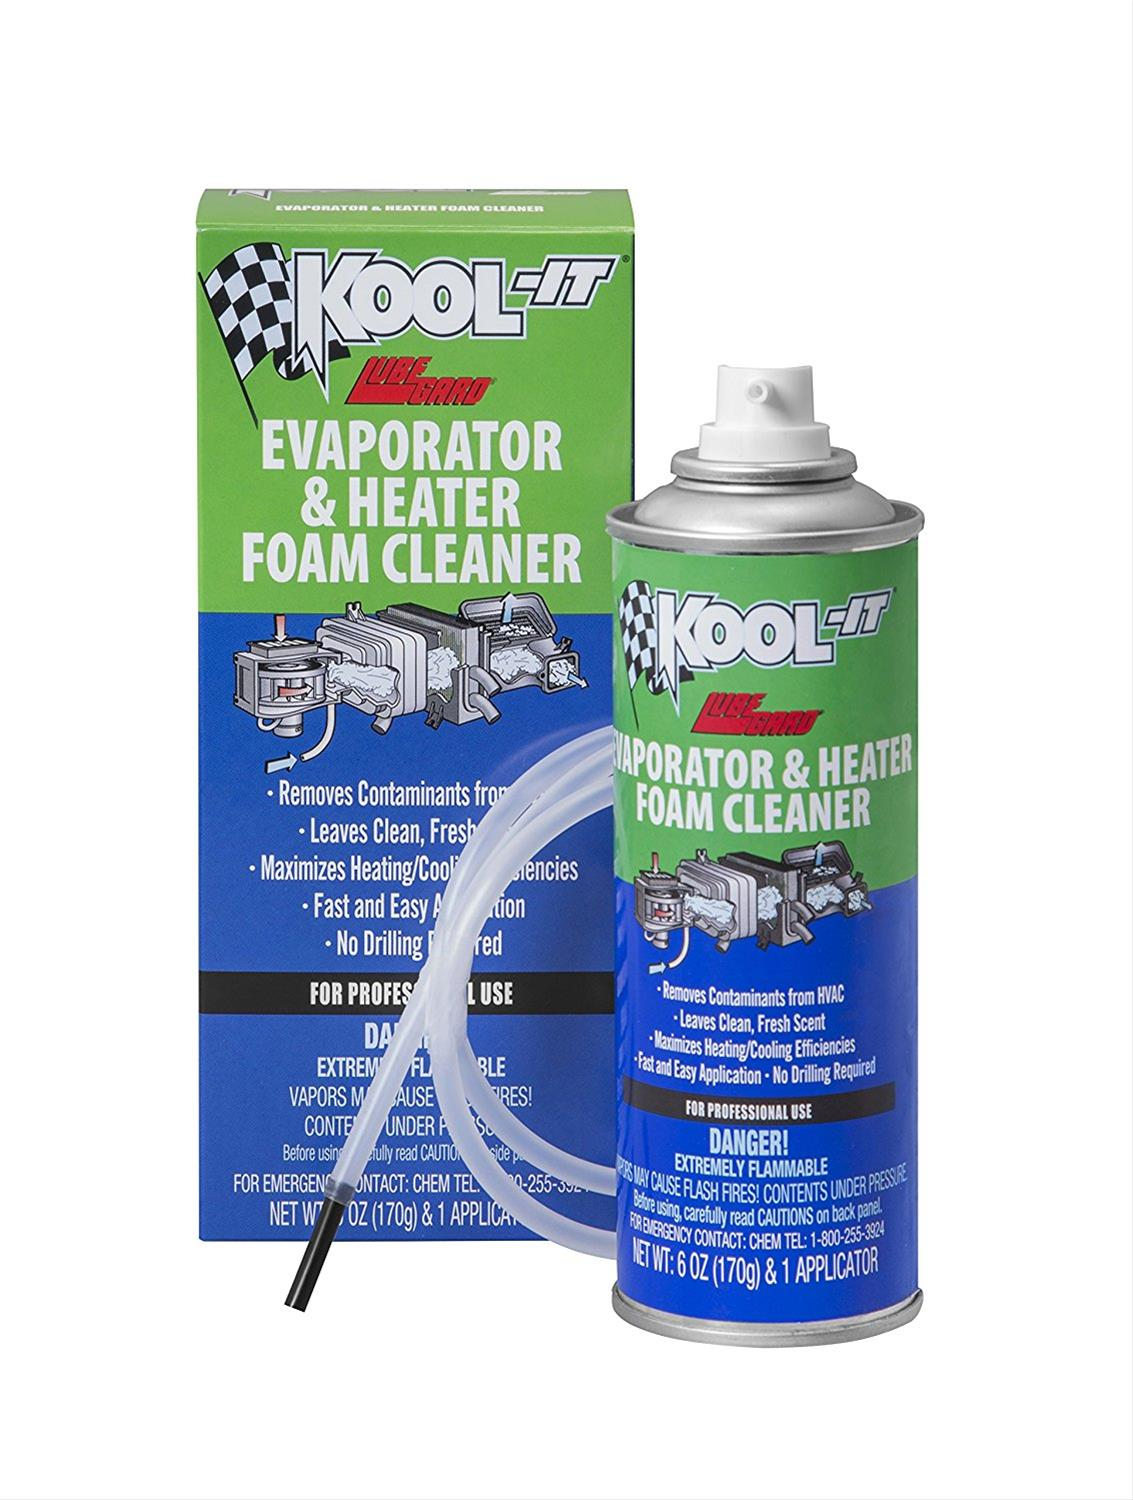 Kool It Evaporator And Heater Foam Cleaner 96030 Free Shipping On Chevrolet State Orders Over 99 At Summit Racing